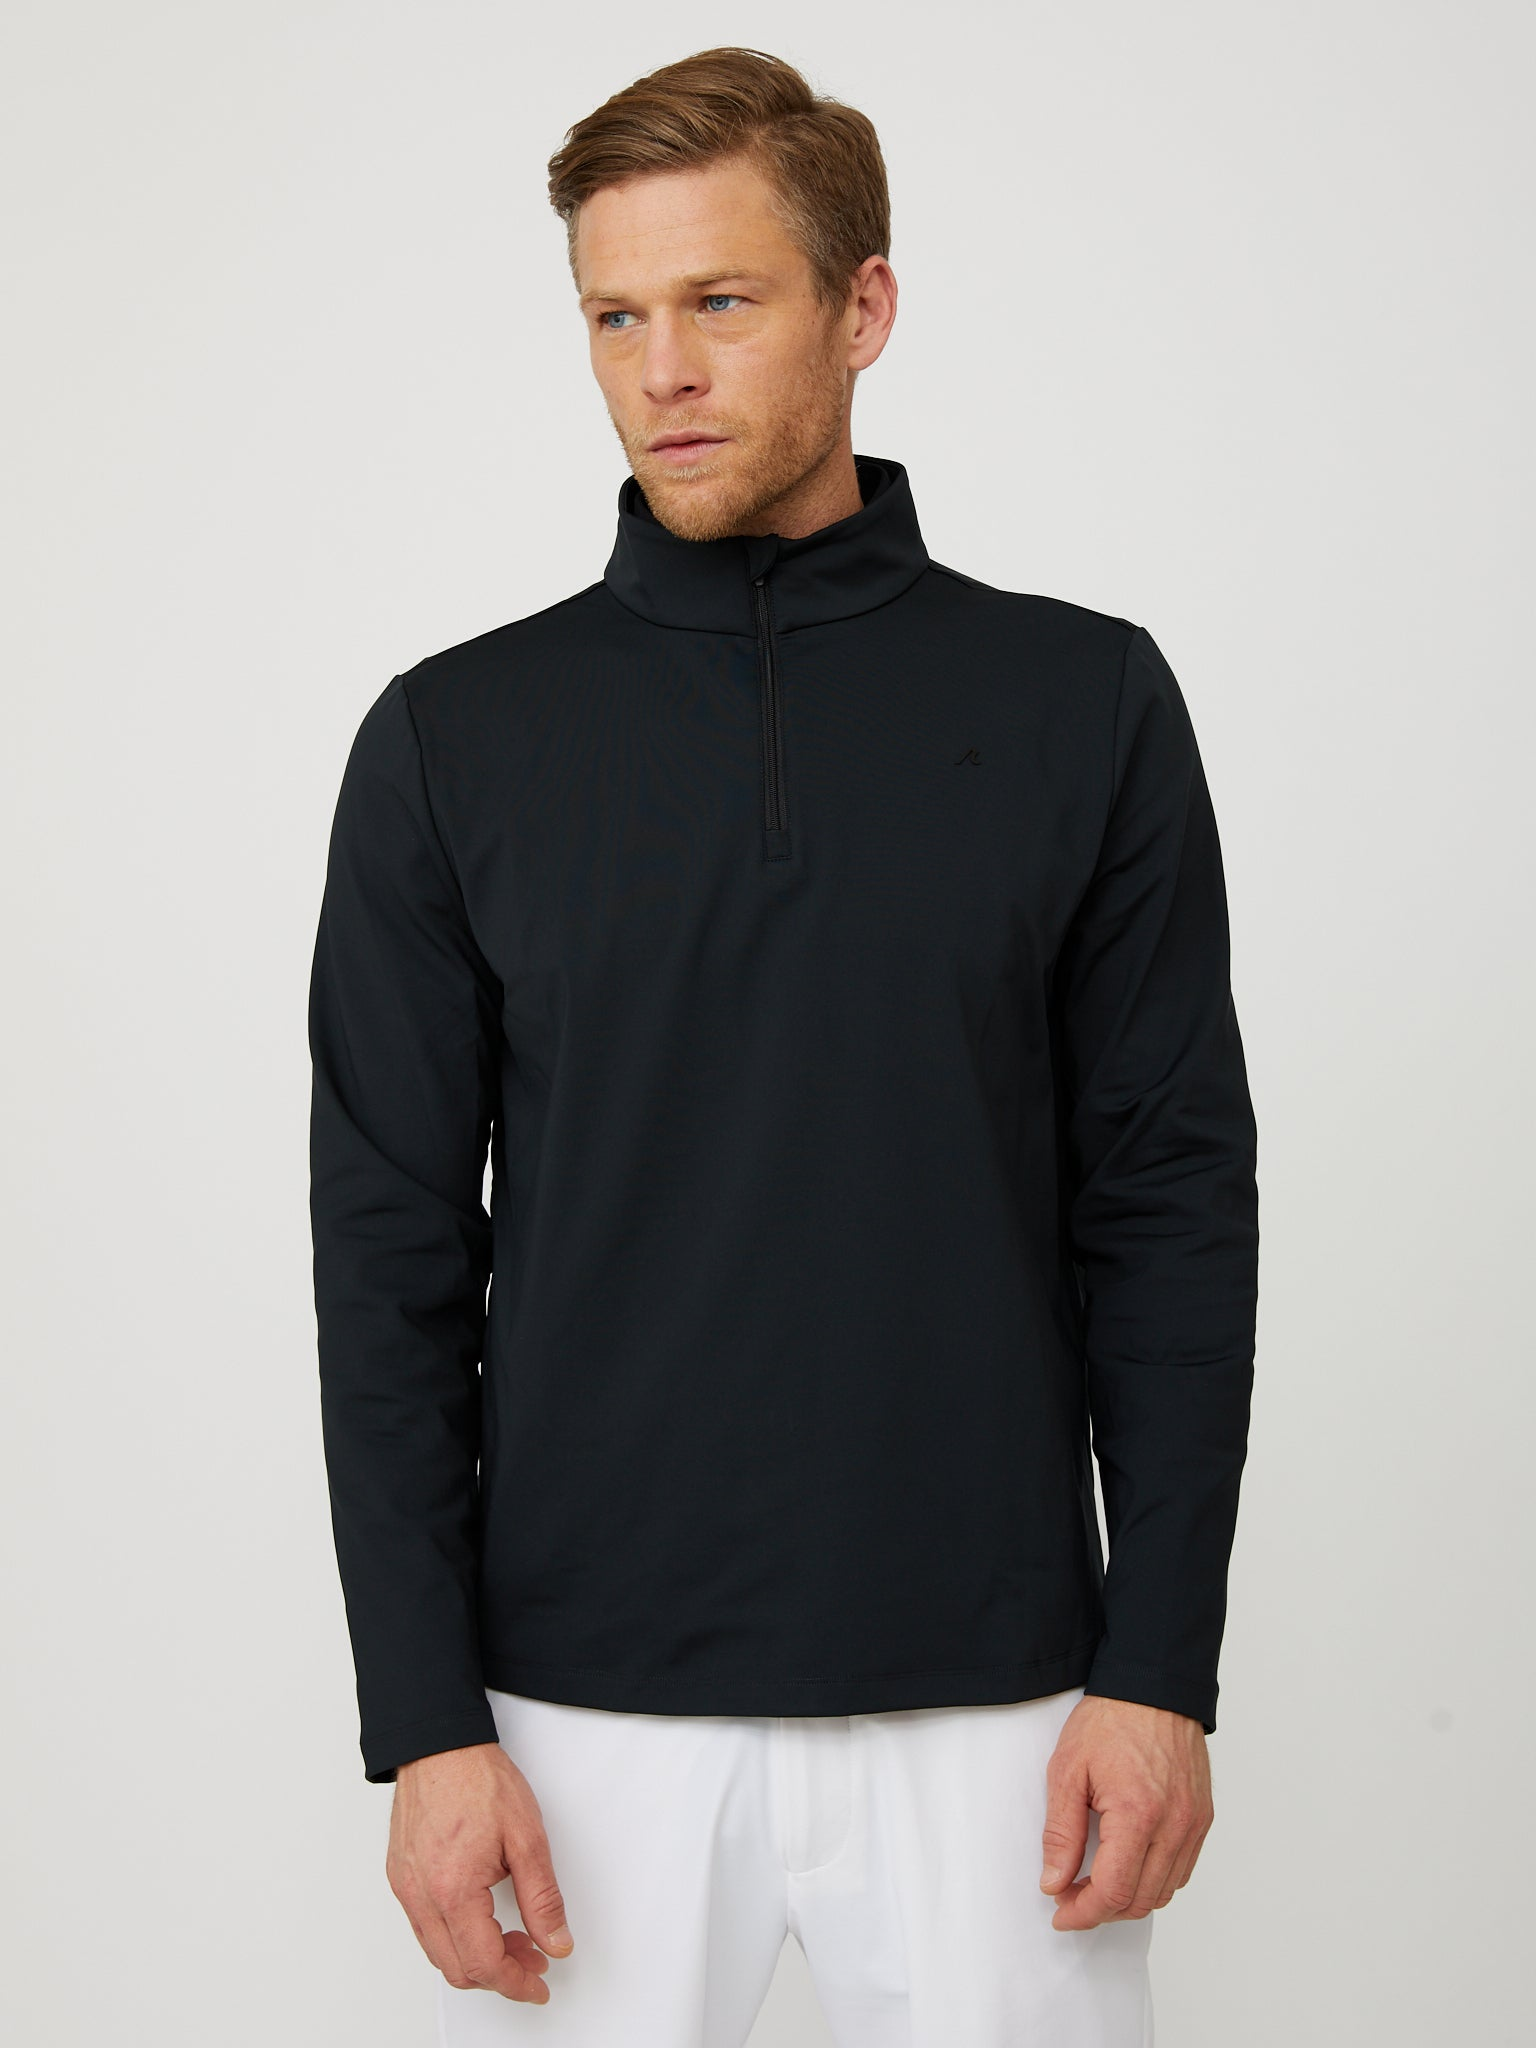 Costa Quarter Zip in Black